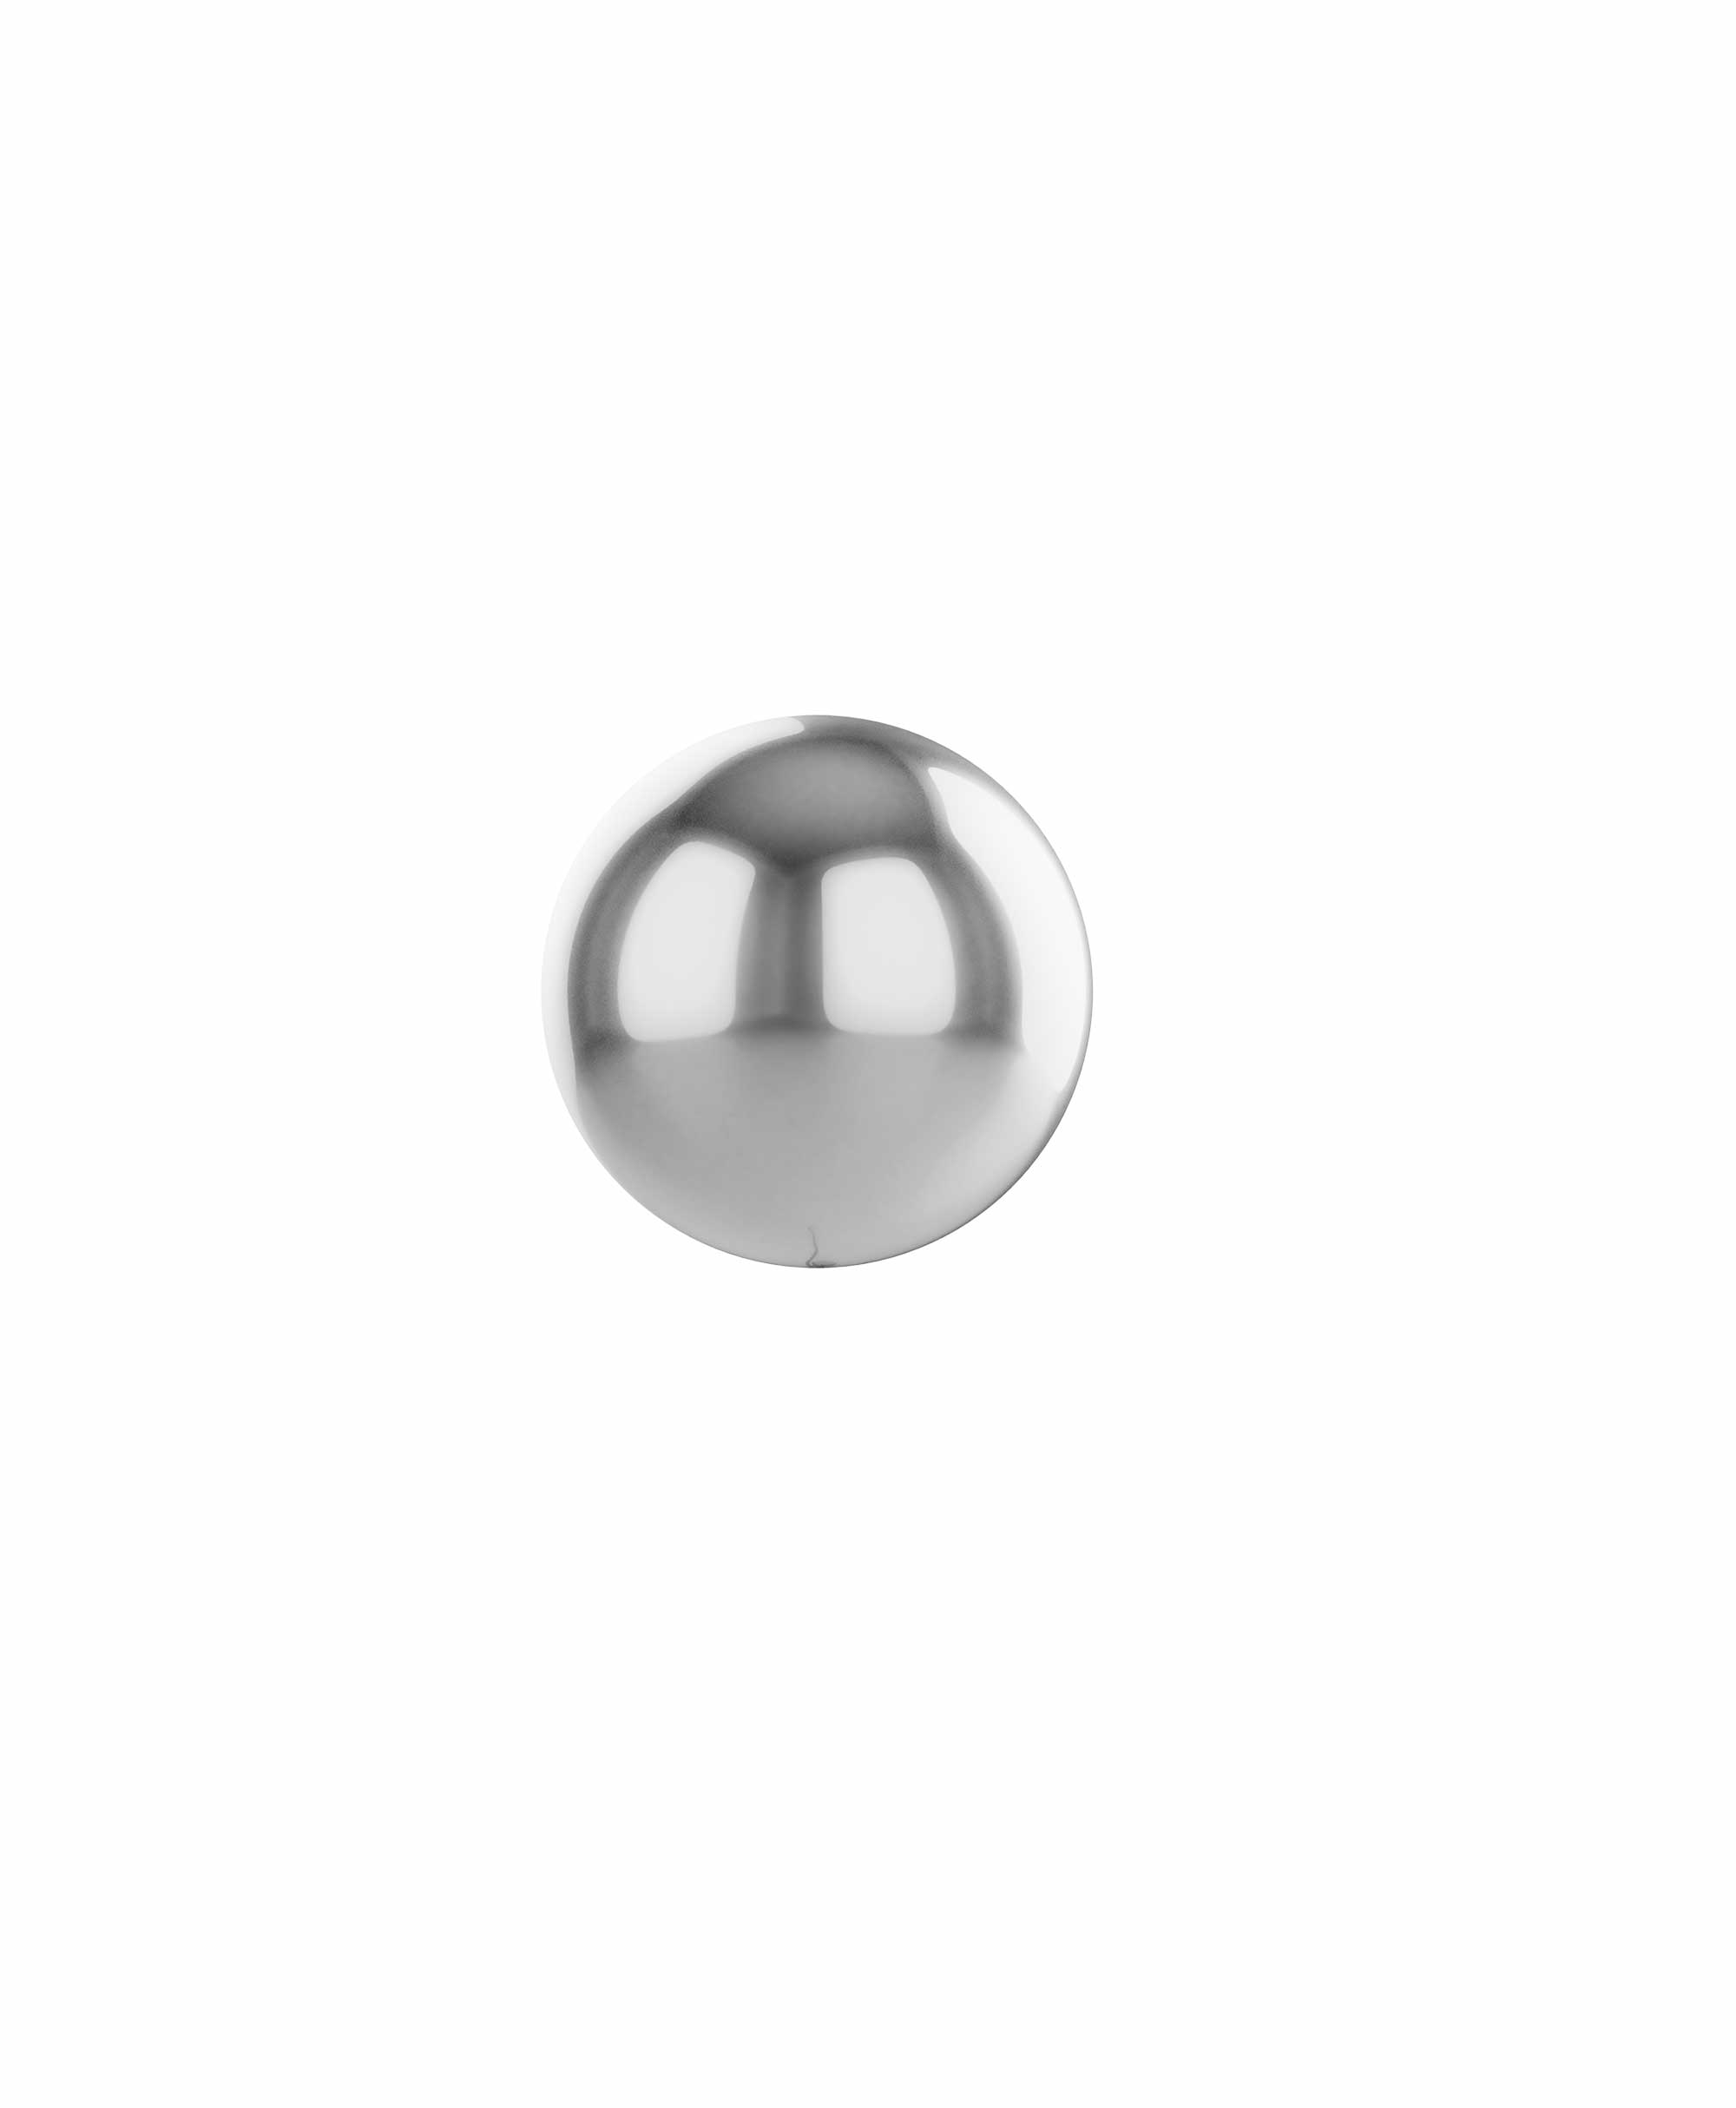 "Silver balloon ball 10"" - Spring theme"